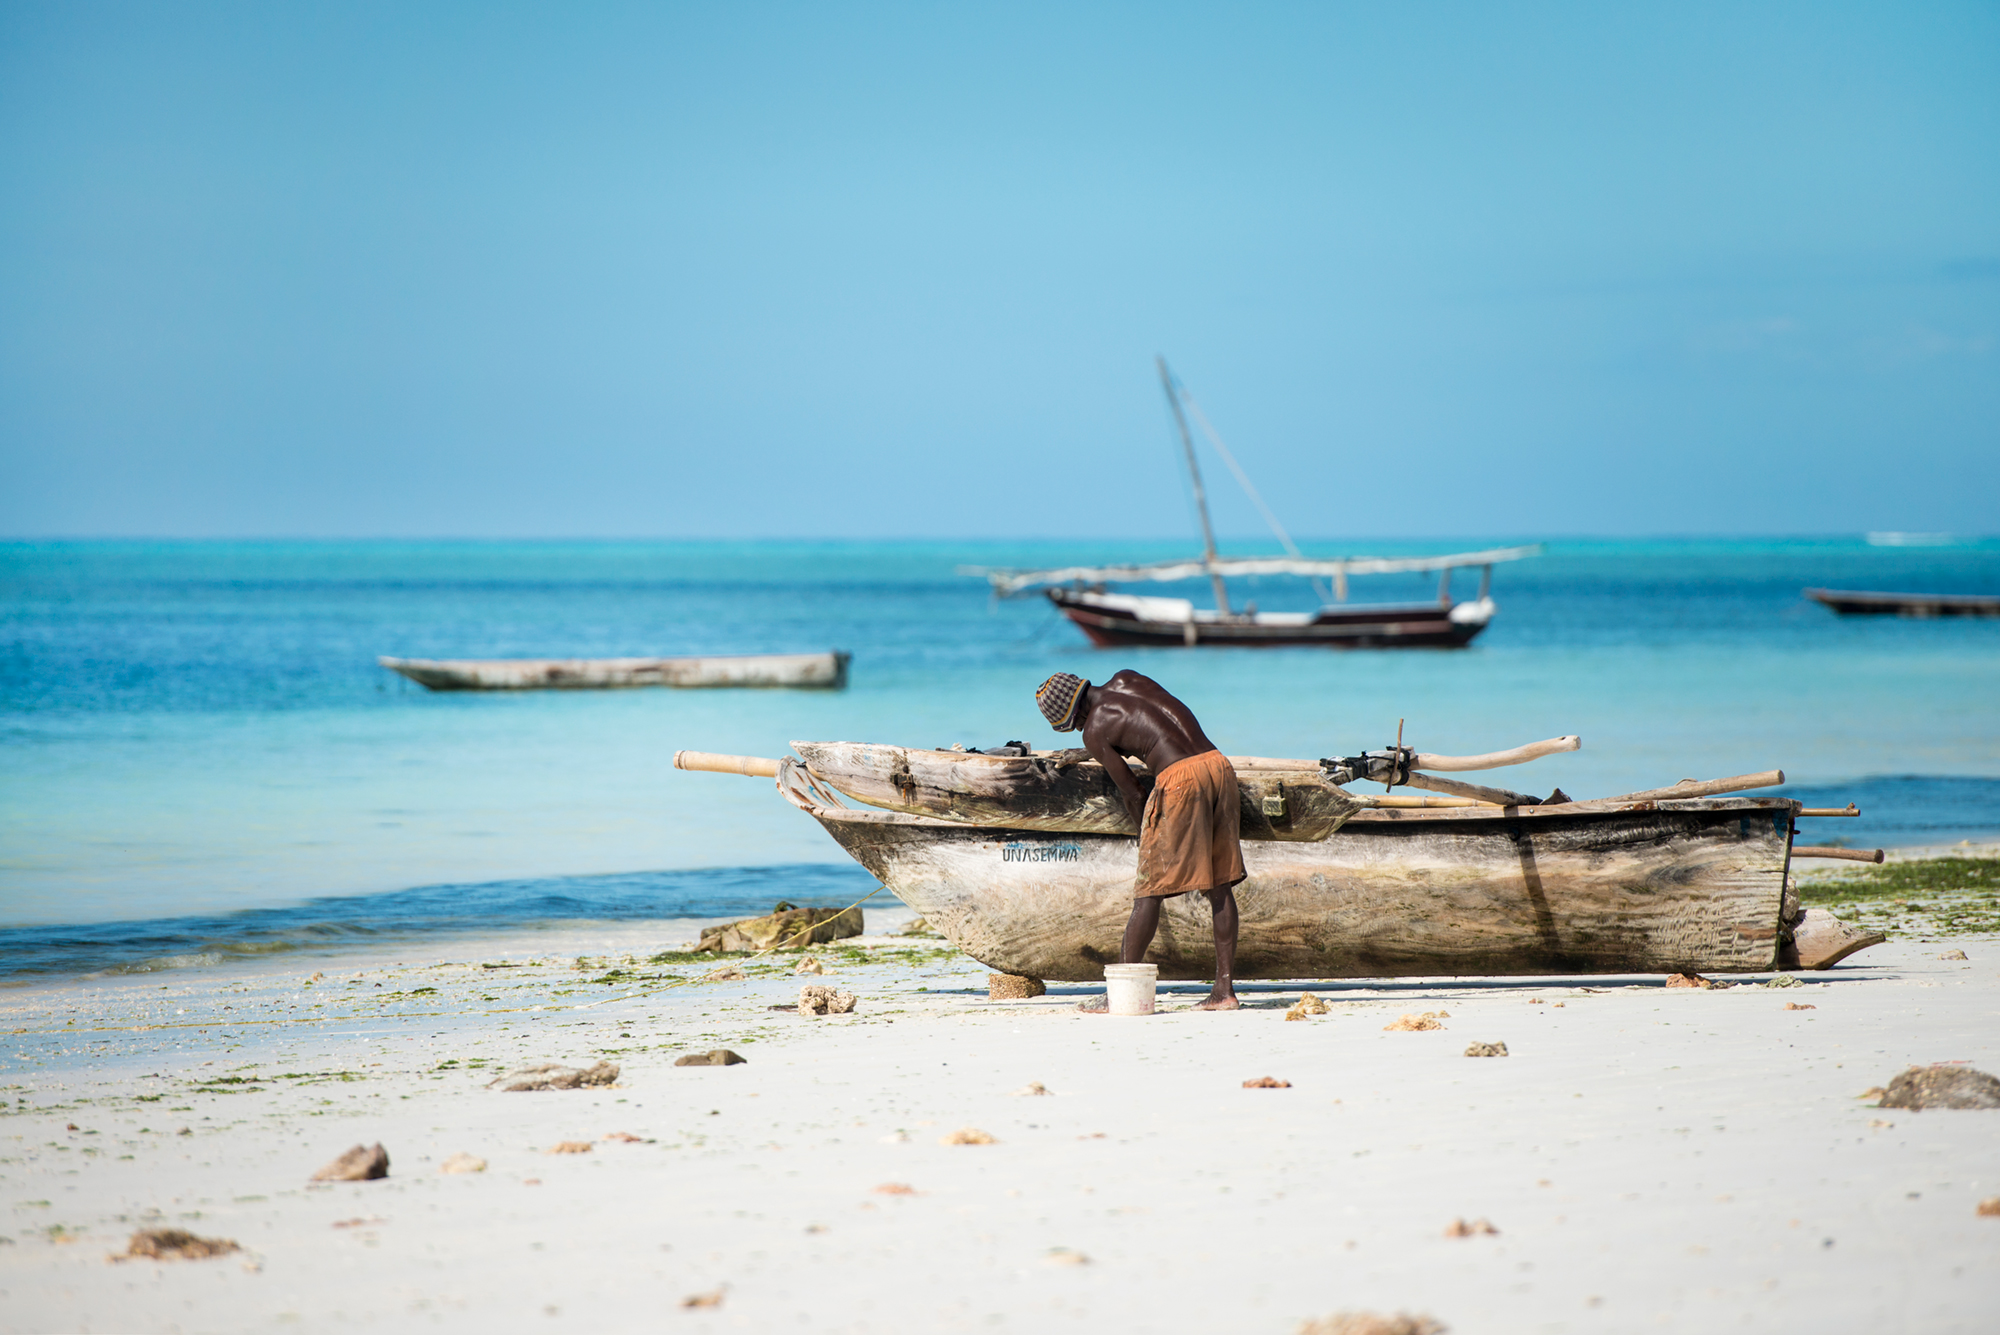 fisherman-with-boat-in-zanzibar-beach.jpg